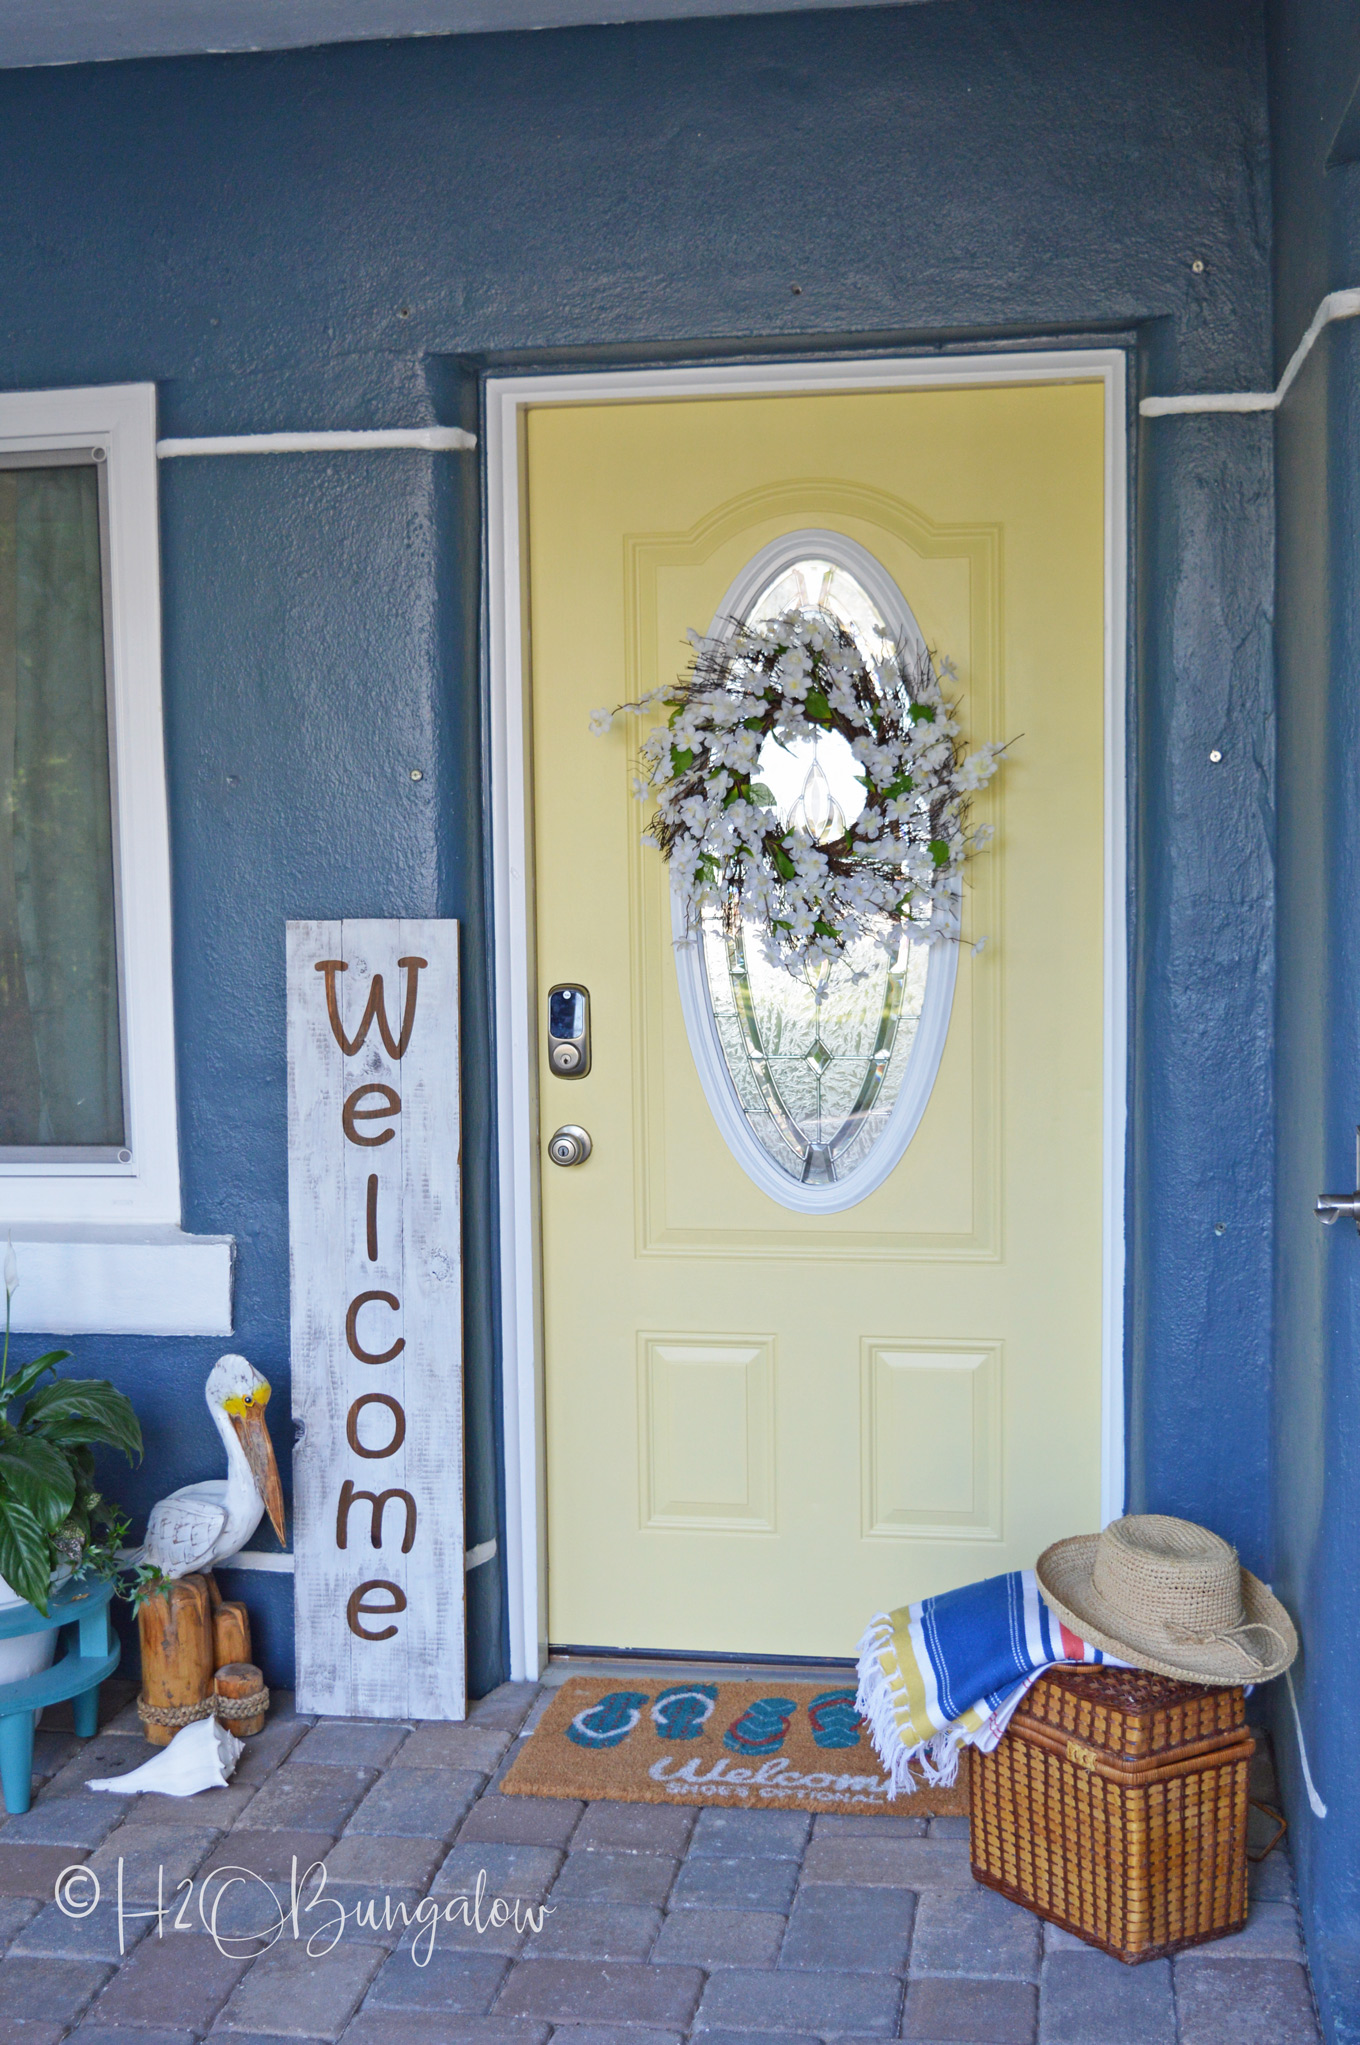 I can't believe I finally bit the bullet and changed out the entry to a yellow painted front door, Guys!  Thinking about painting your front door yellow or maybe even another color? See my tutorial on how to paint a front door, pick out a color and links to my most popular home improvement painting tutorials